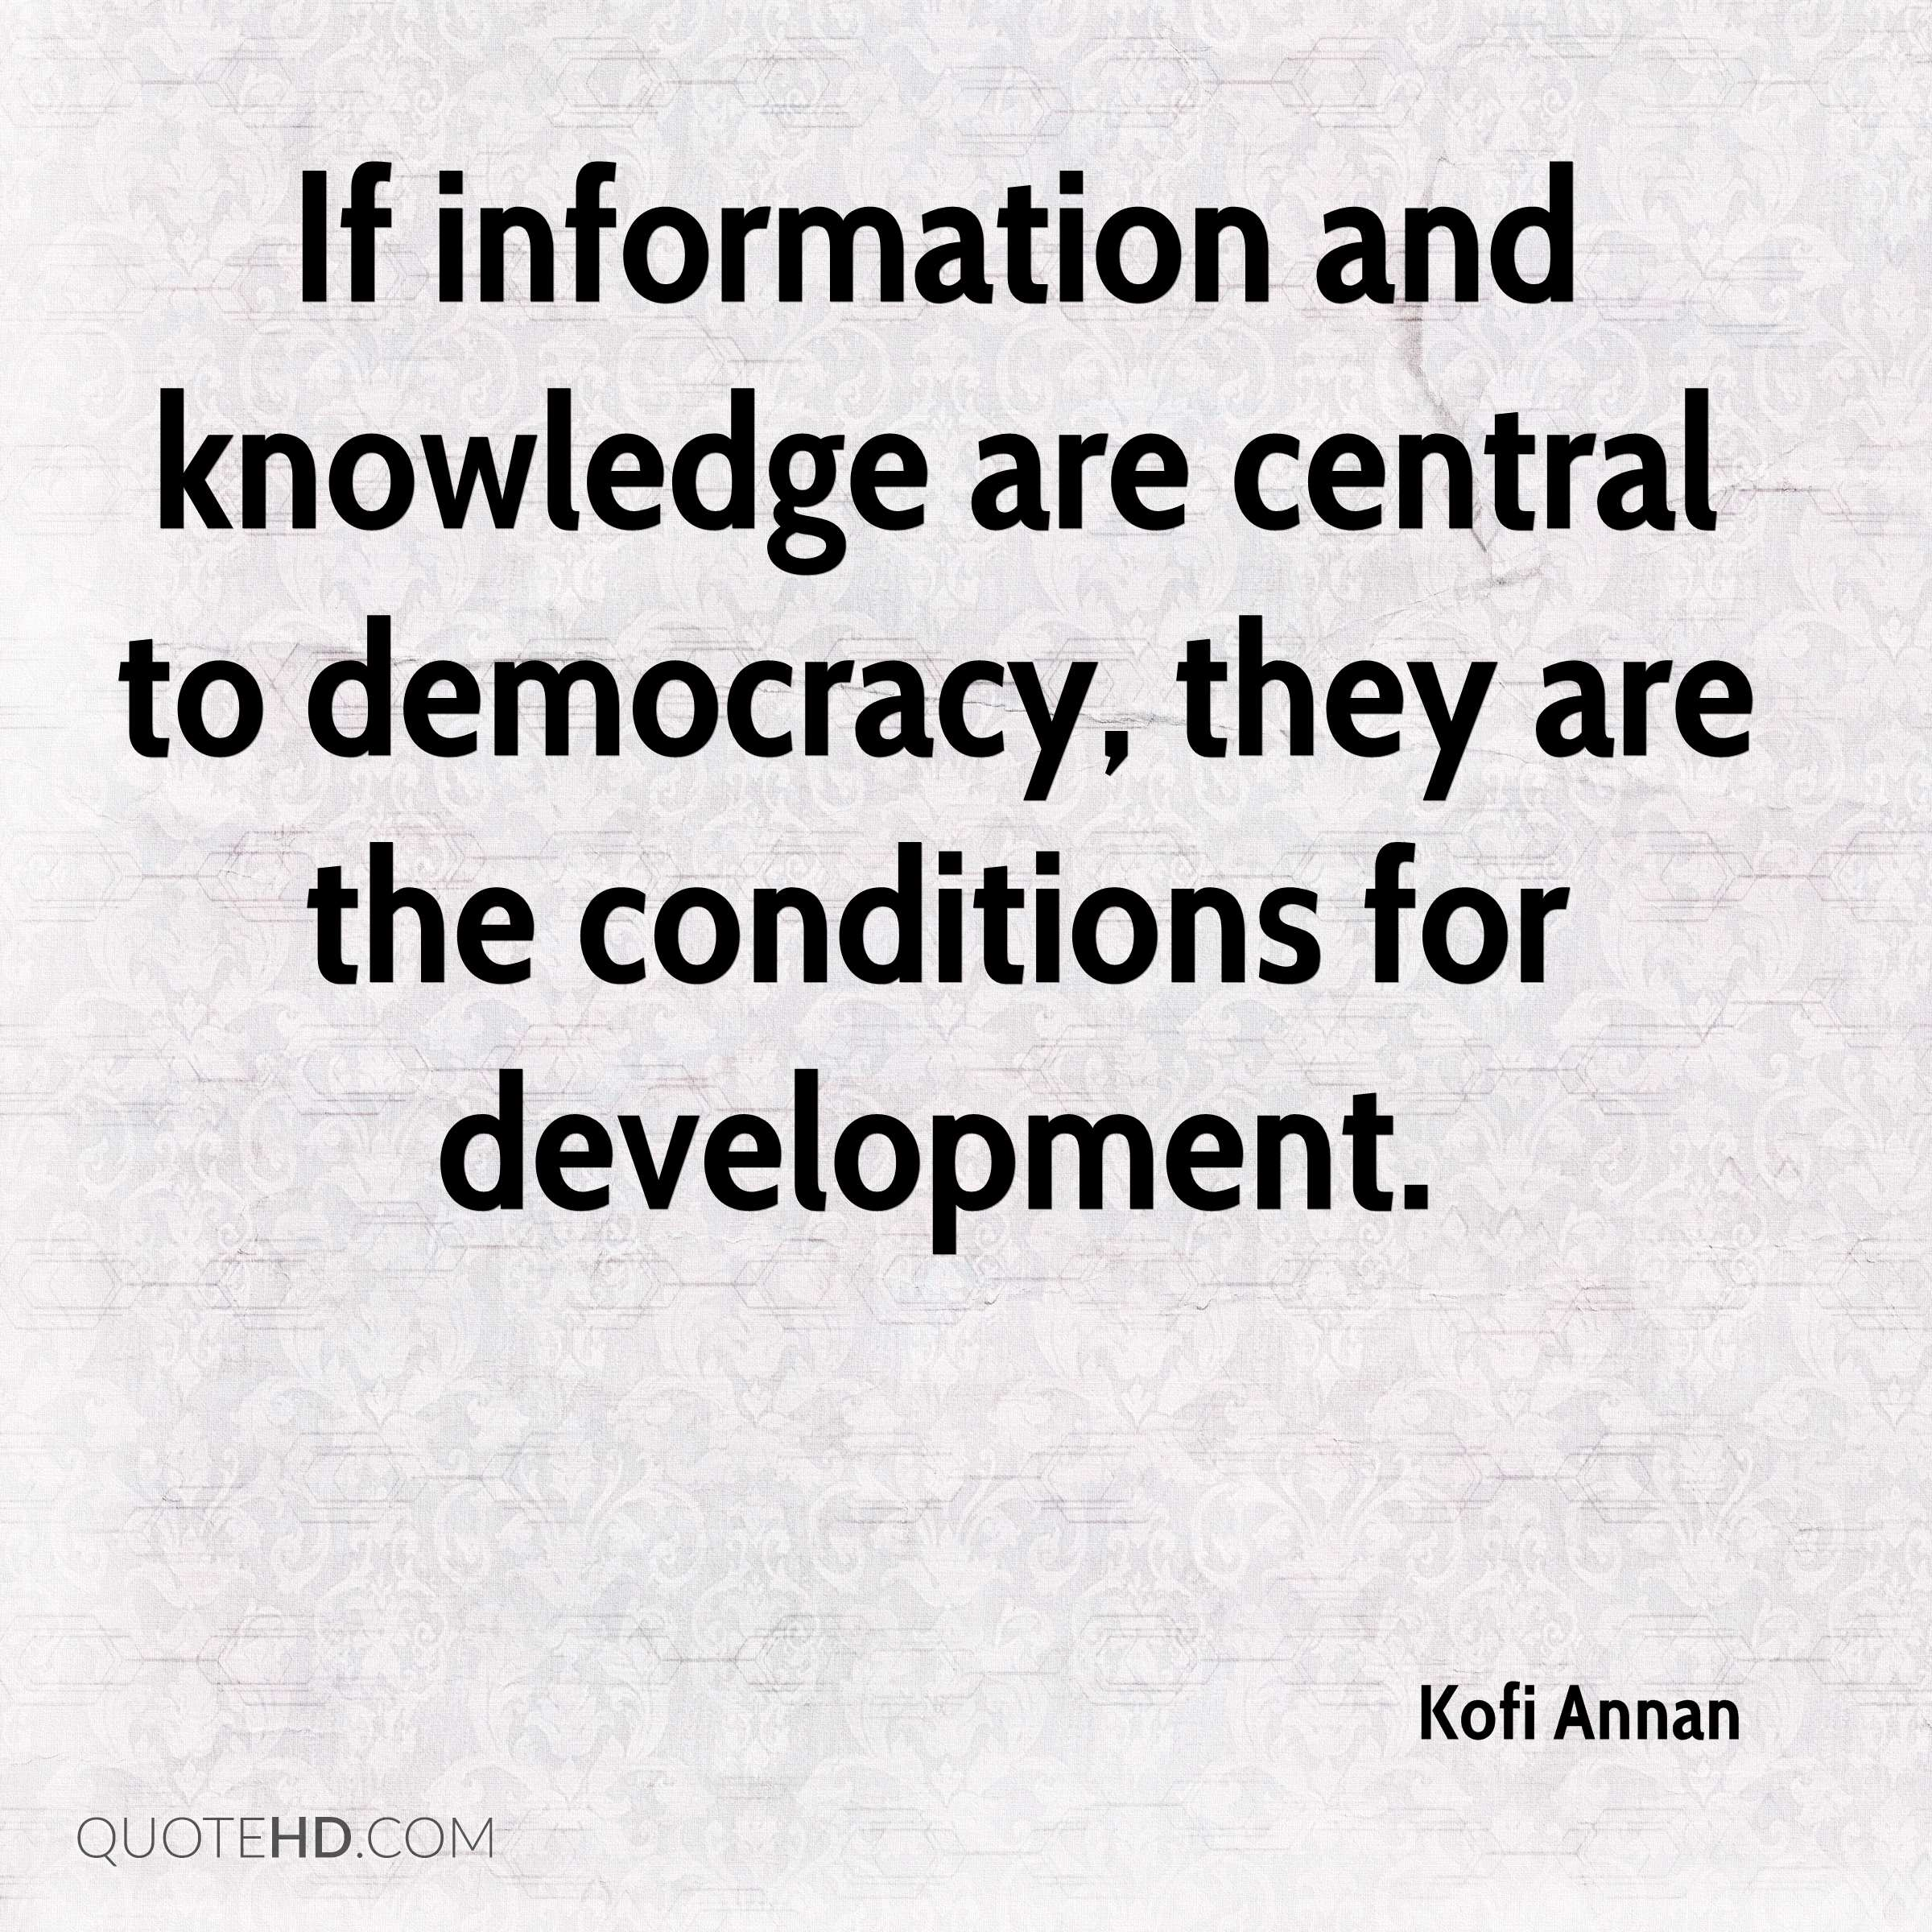 Gender Equality Quotes Kofi Annan Equality Quotes  Quotehd